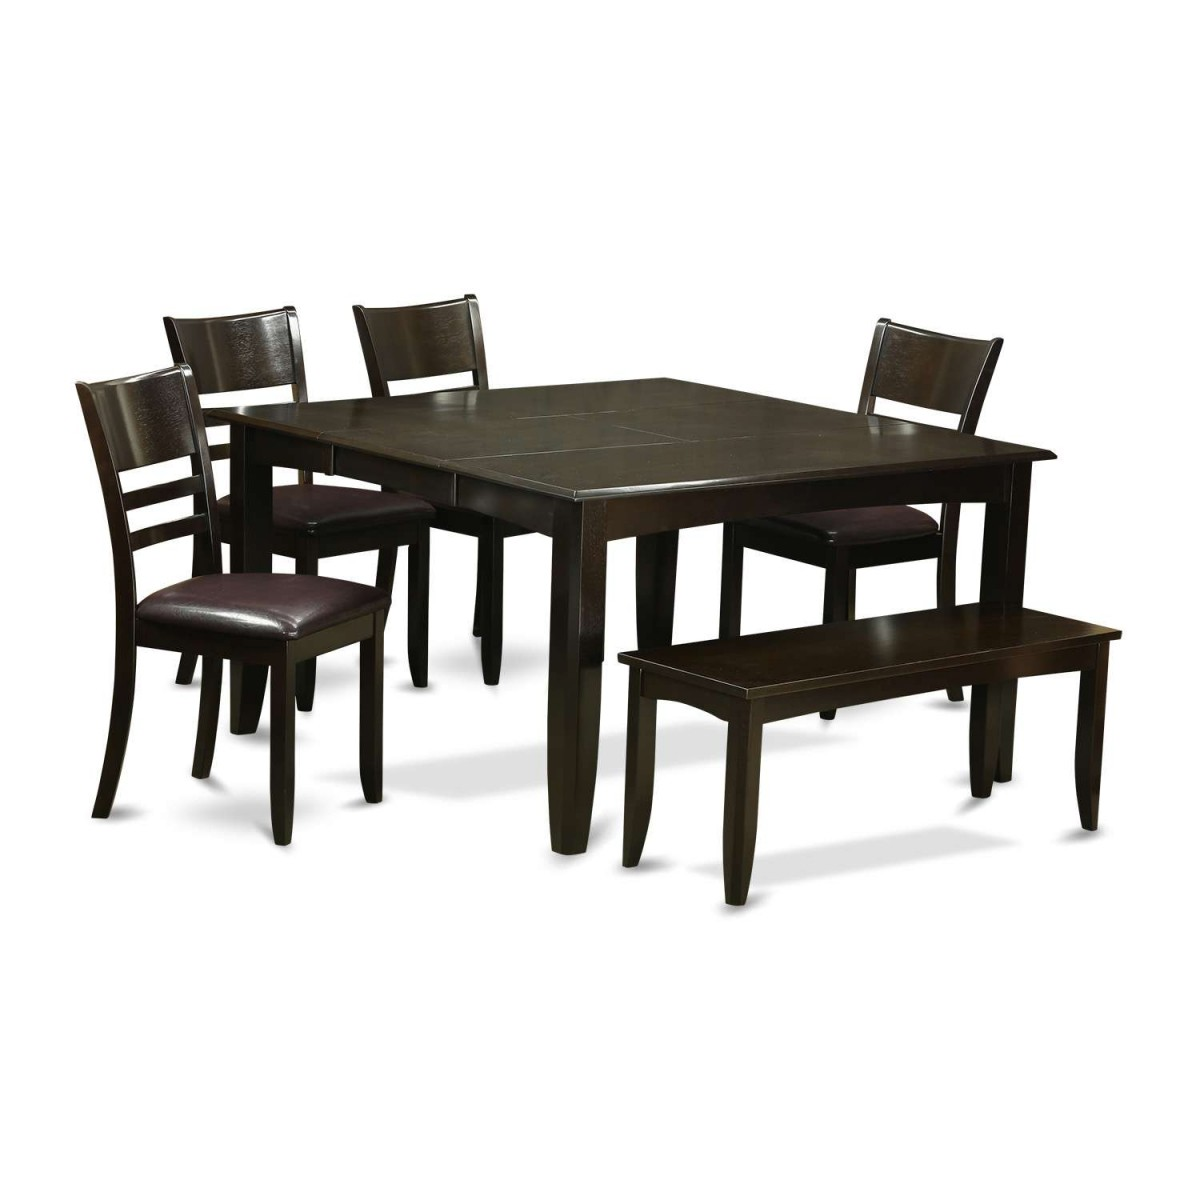 Square Dining Table With Bench: East West Furniture Parfait 6 Piece Dining Table Set With